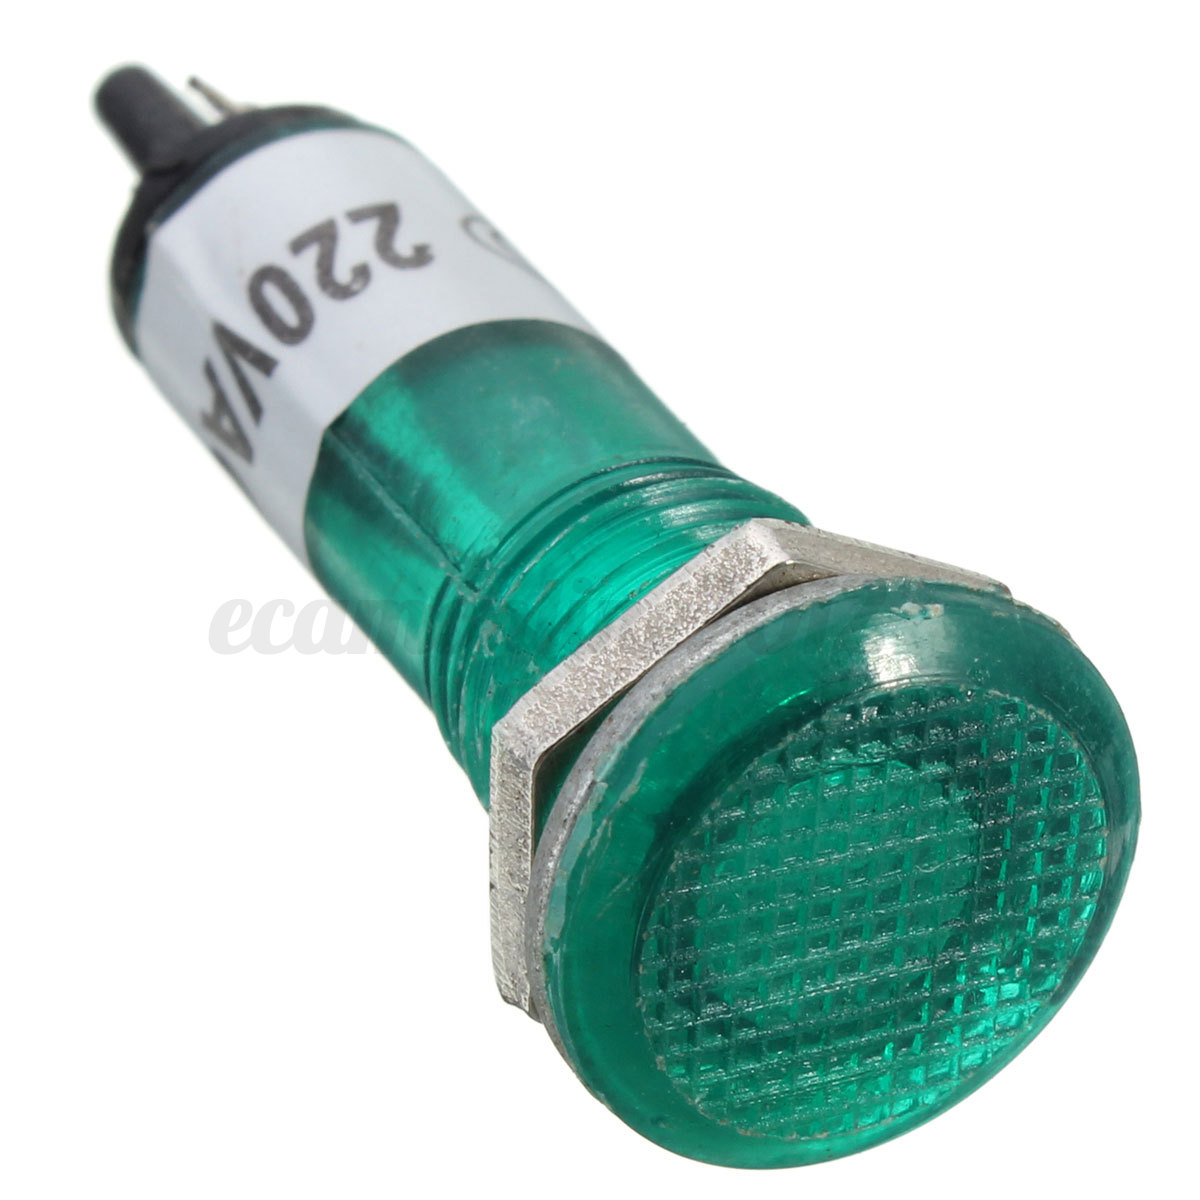 led pilot panel indicator signal warning light bulb lamp 10mm 220v ac car auto ebay. Black Bedroom Furniture Sets. Home Design Ideas